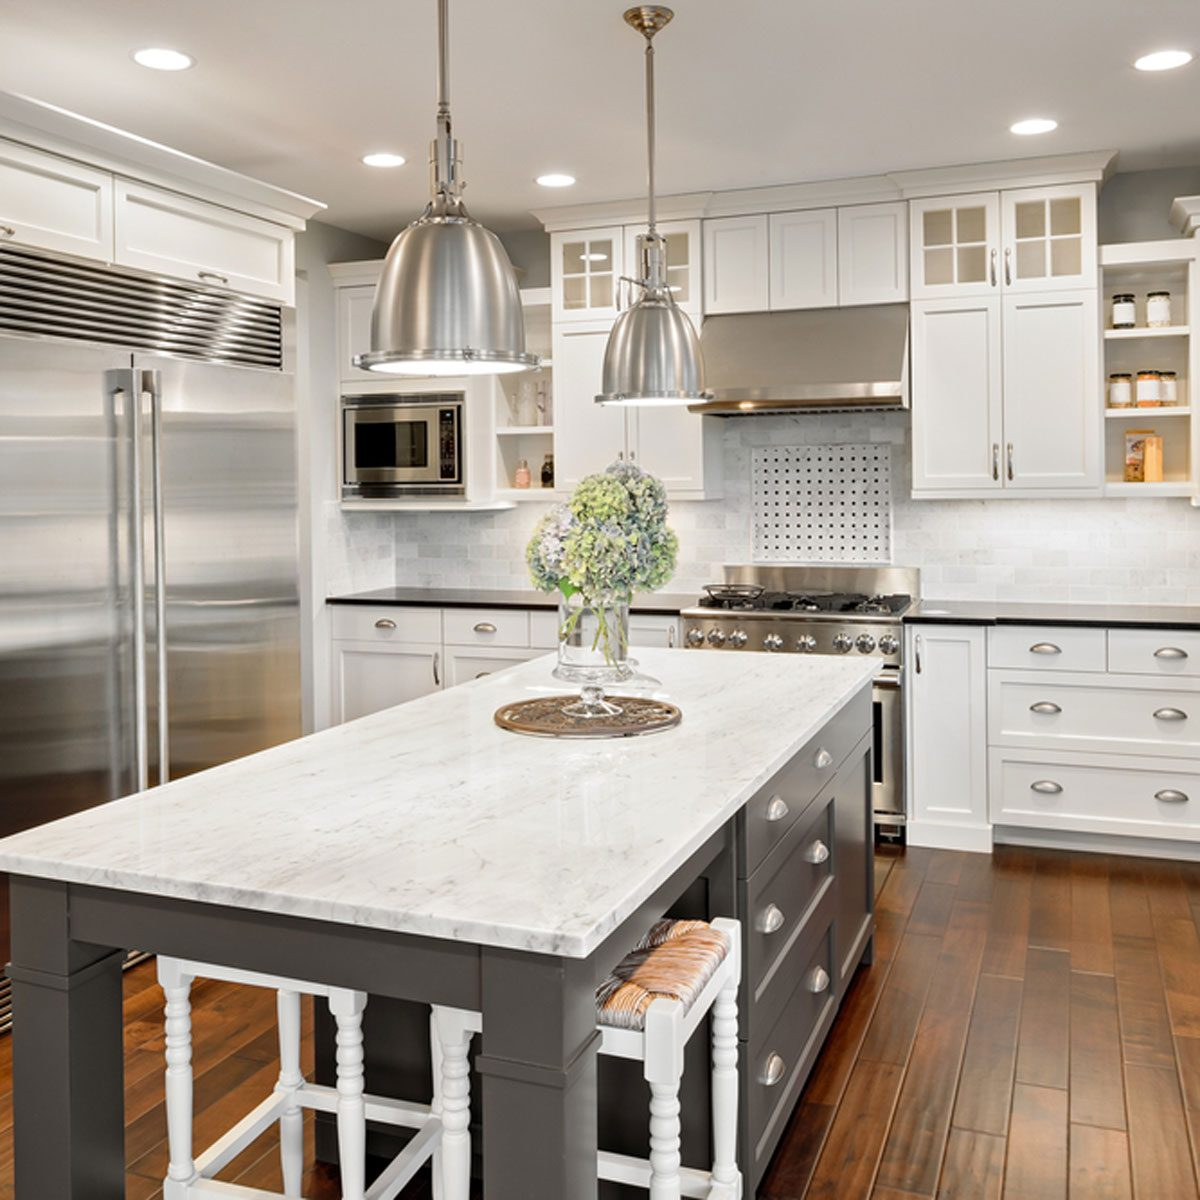 Kitchen Lighting 14 Tips For Better Kitchen Lighting The Family Handyman